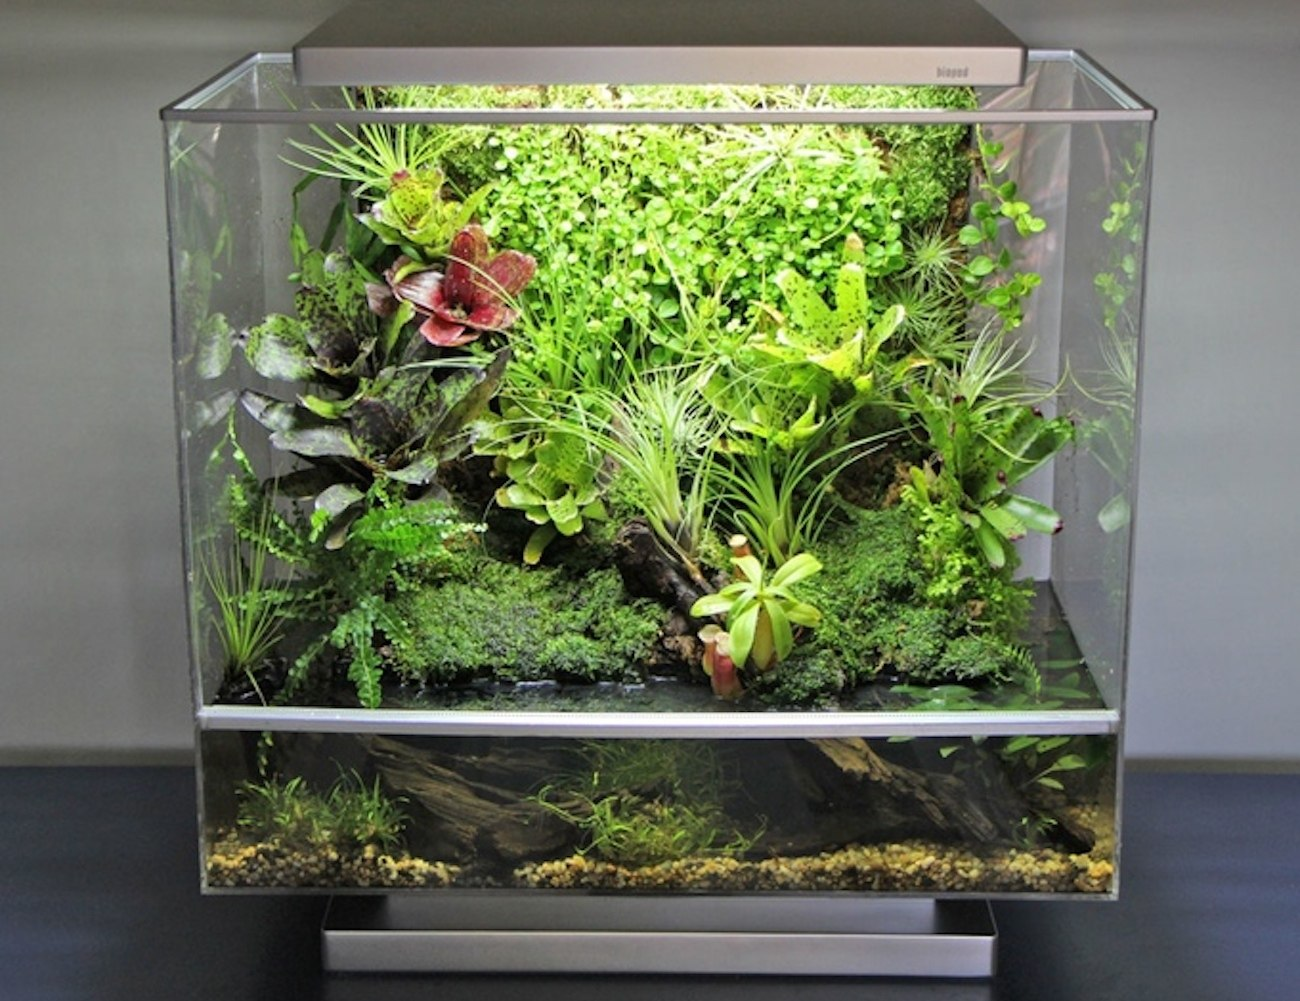 Biopod Self-Contained Ecosystem